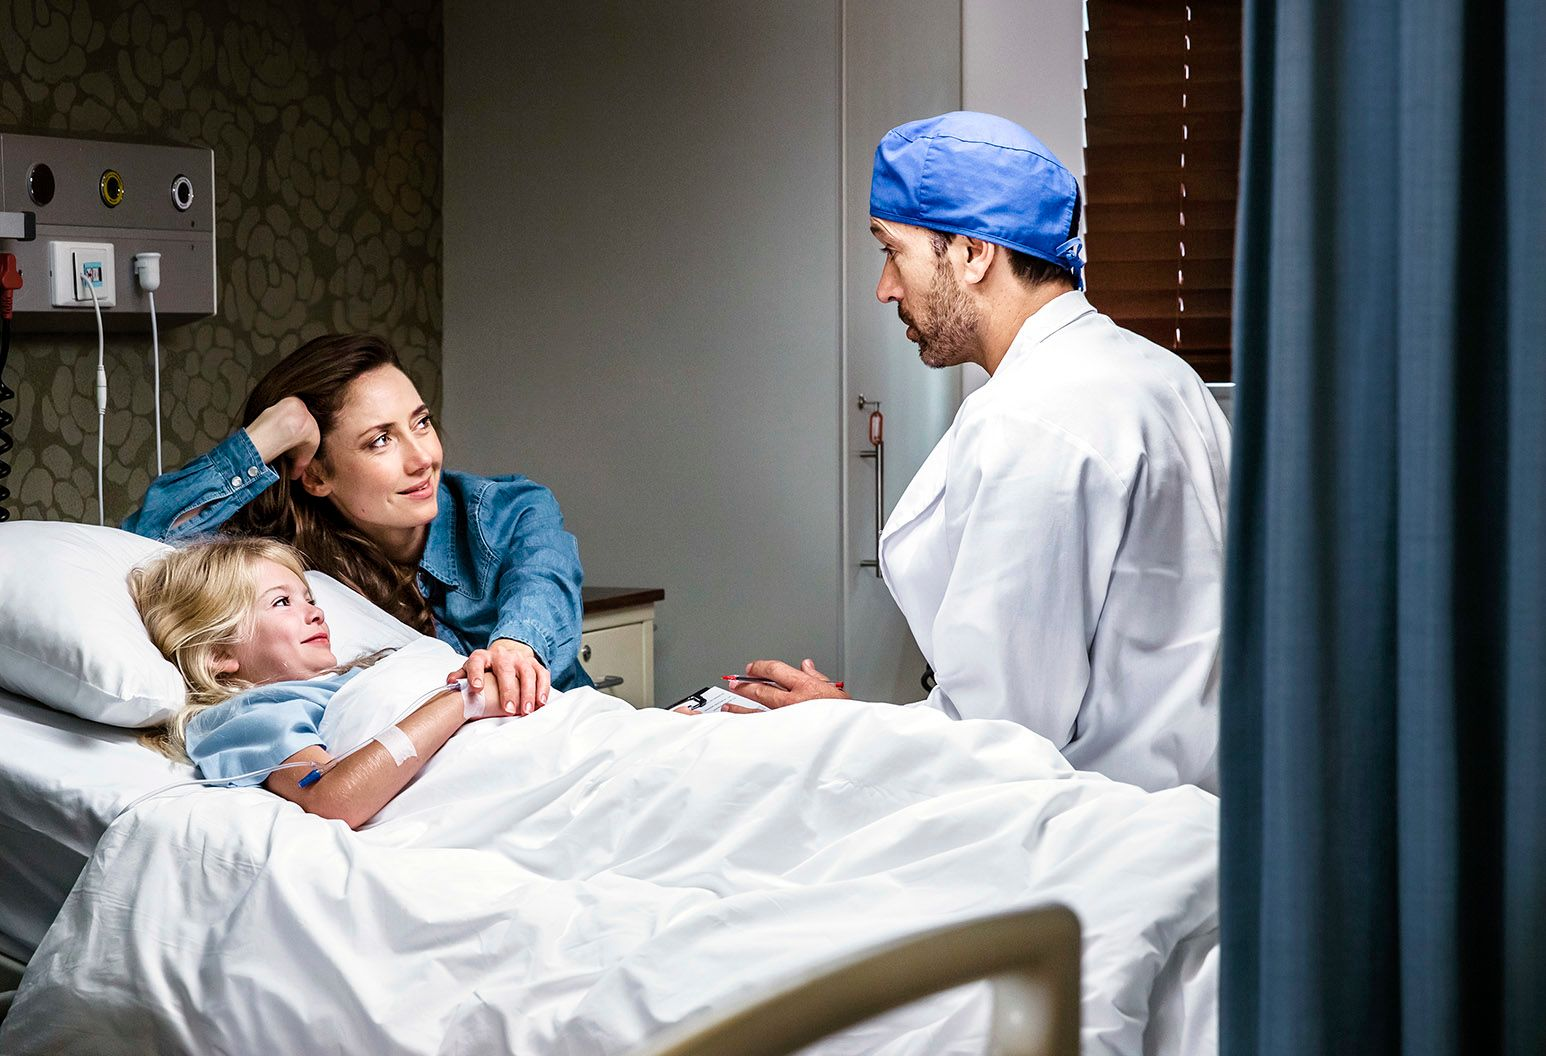 A little girl with blonde hair lays in a hospital bed and her mother is next to her holding her hand. A male doctor wearing a blue operating room cap is also beside, talking to them.